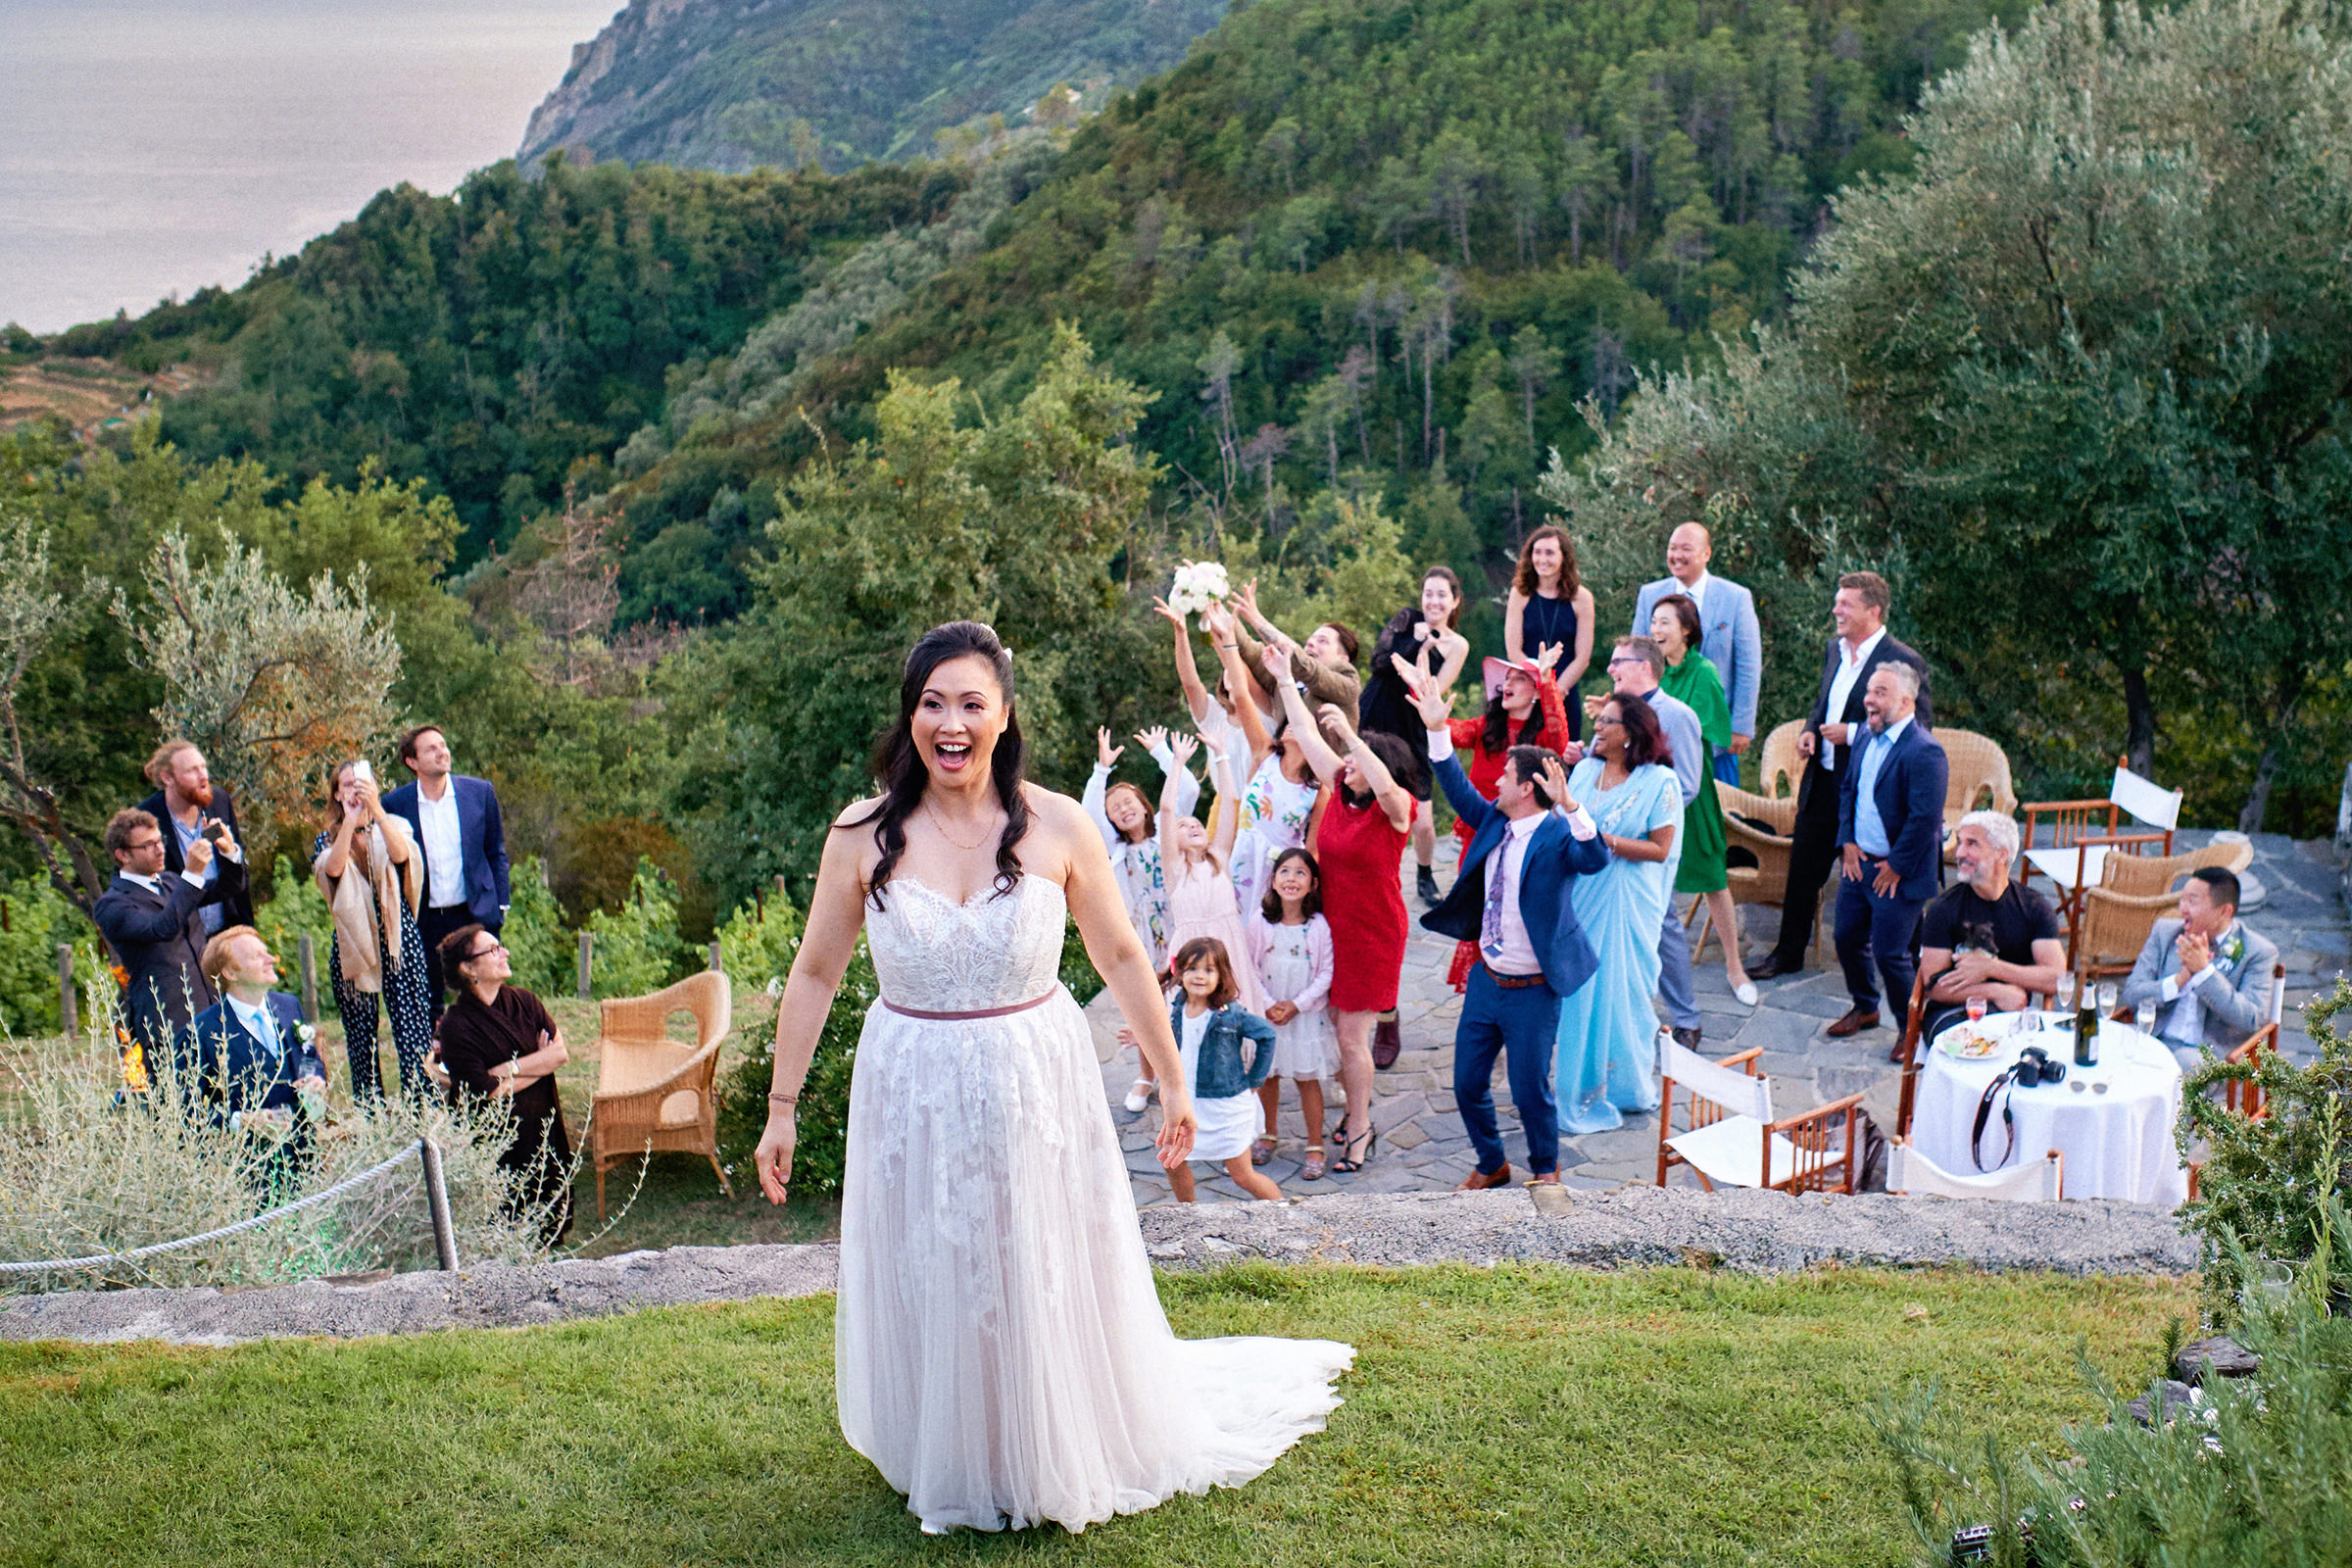 Bouquet toss at outdoor reception site in Italy - photo by Andrea Bagnasco - Italy wedding photographer